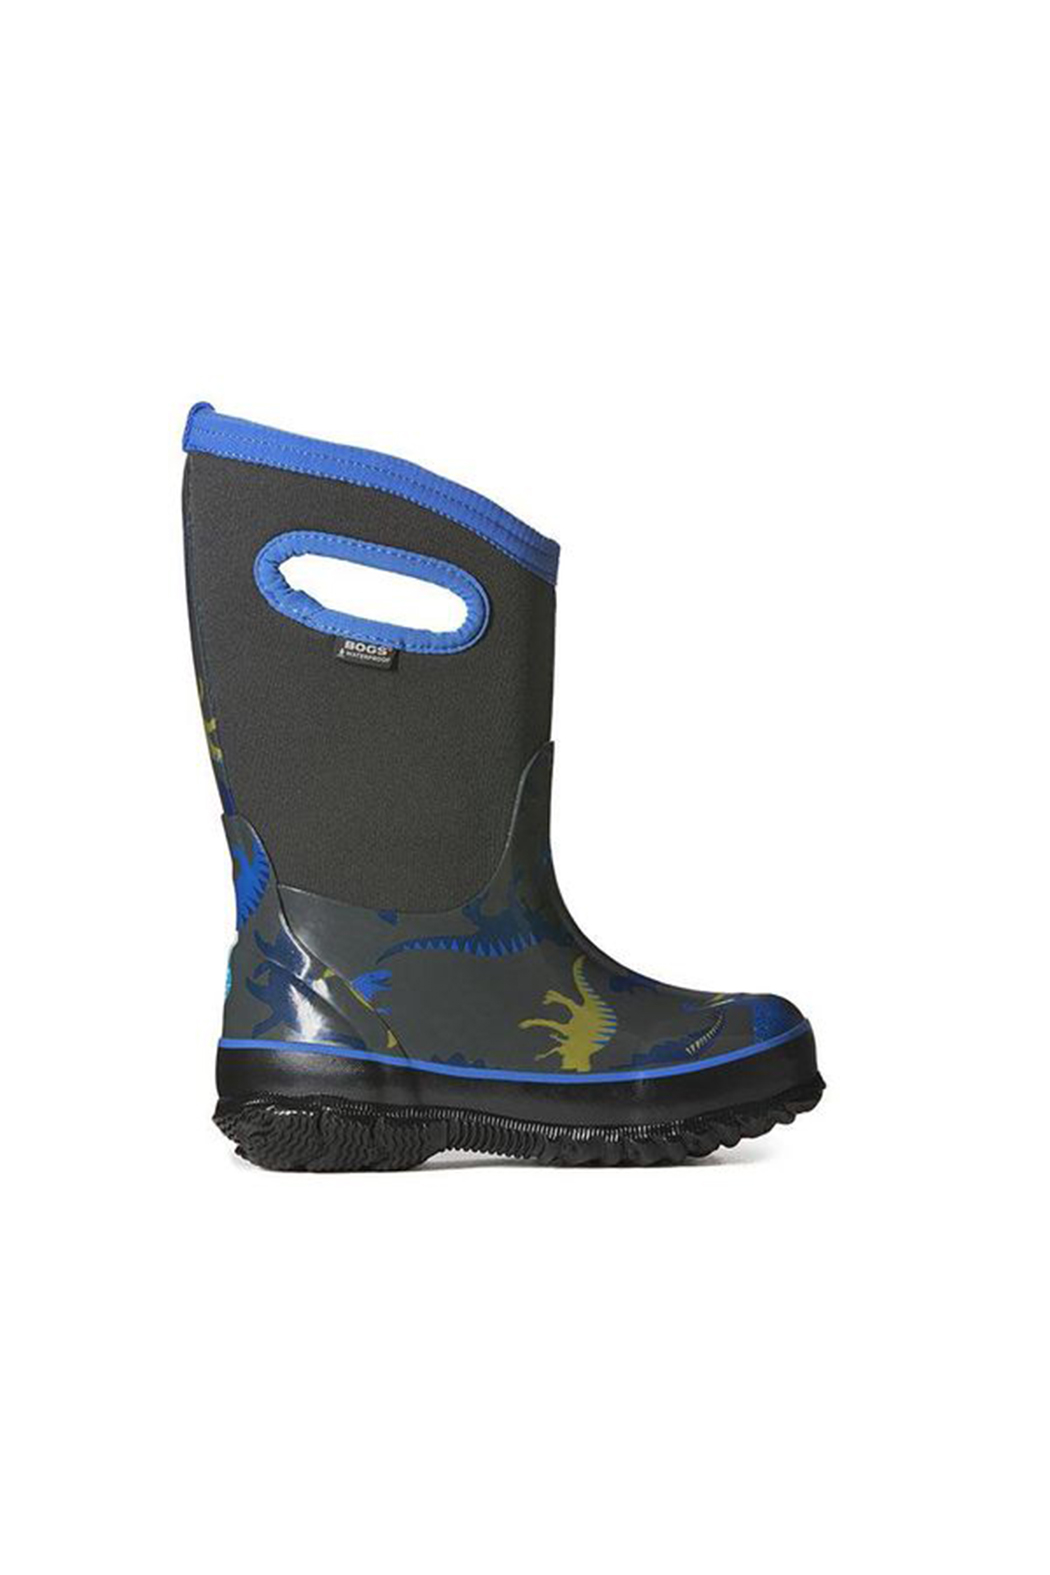 BOGS Classic Dinosaur Kids Insulated Boots - Main Image